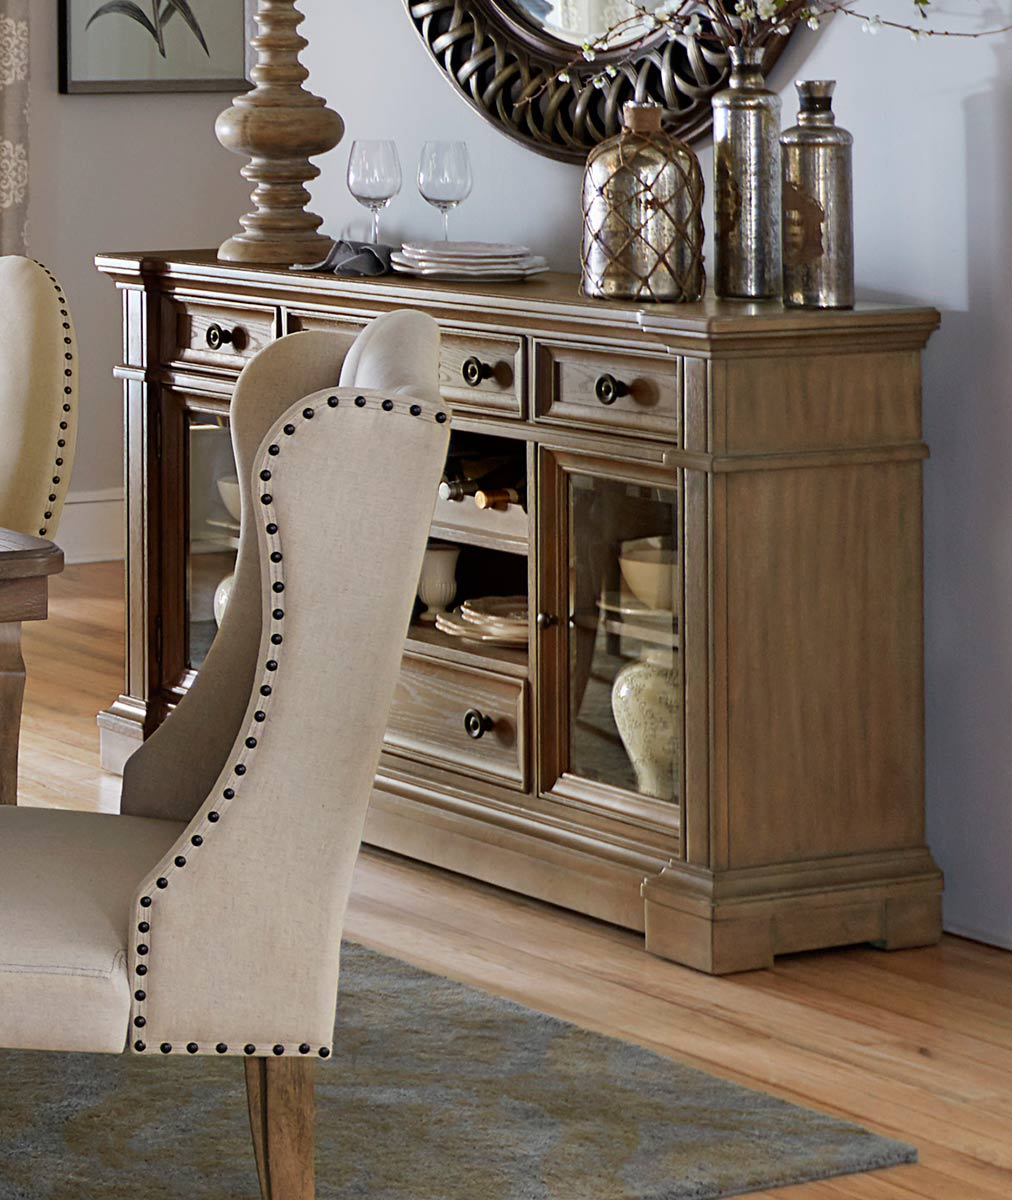 Homelegance Avignon Server With Glass Door - Natural Taupe